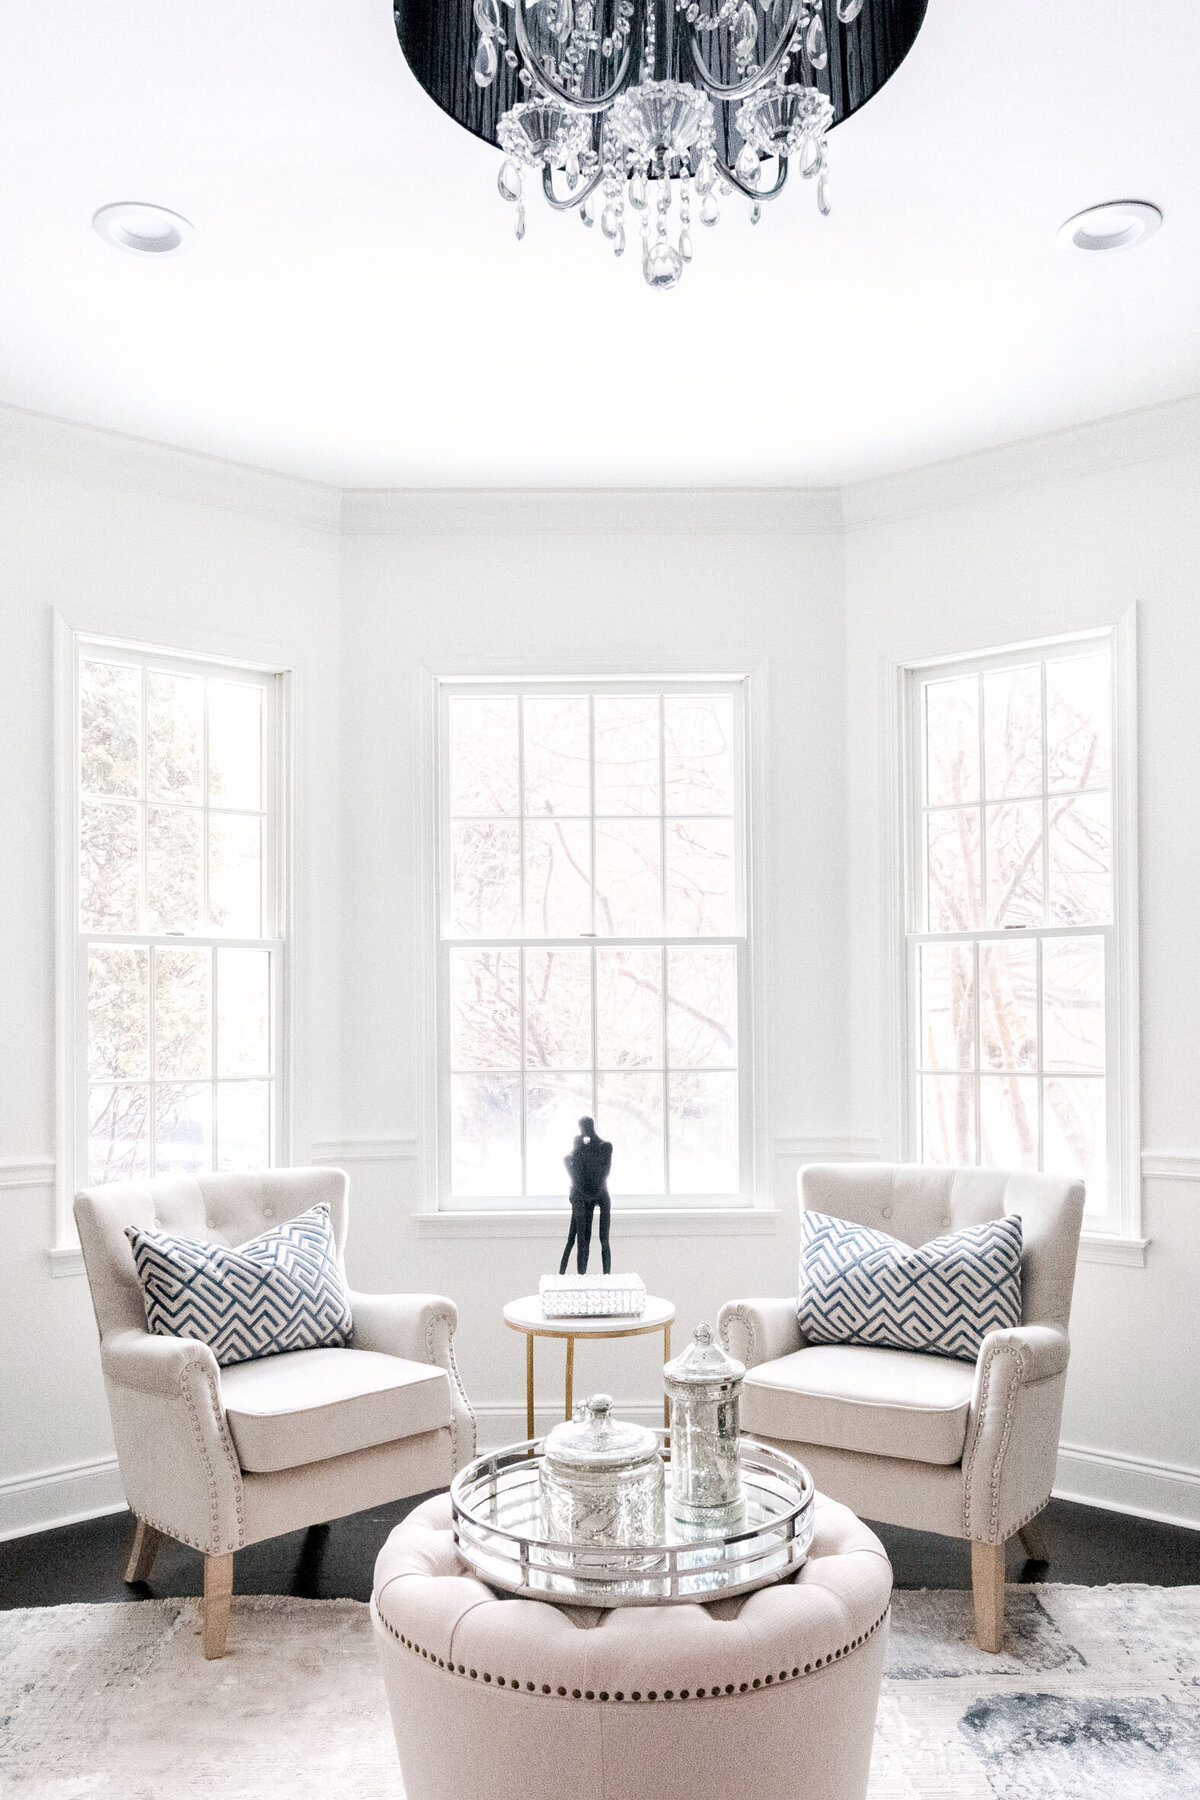 New Jersey Interior Photography, Seating Area